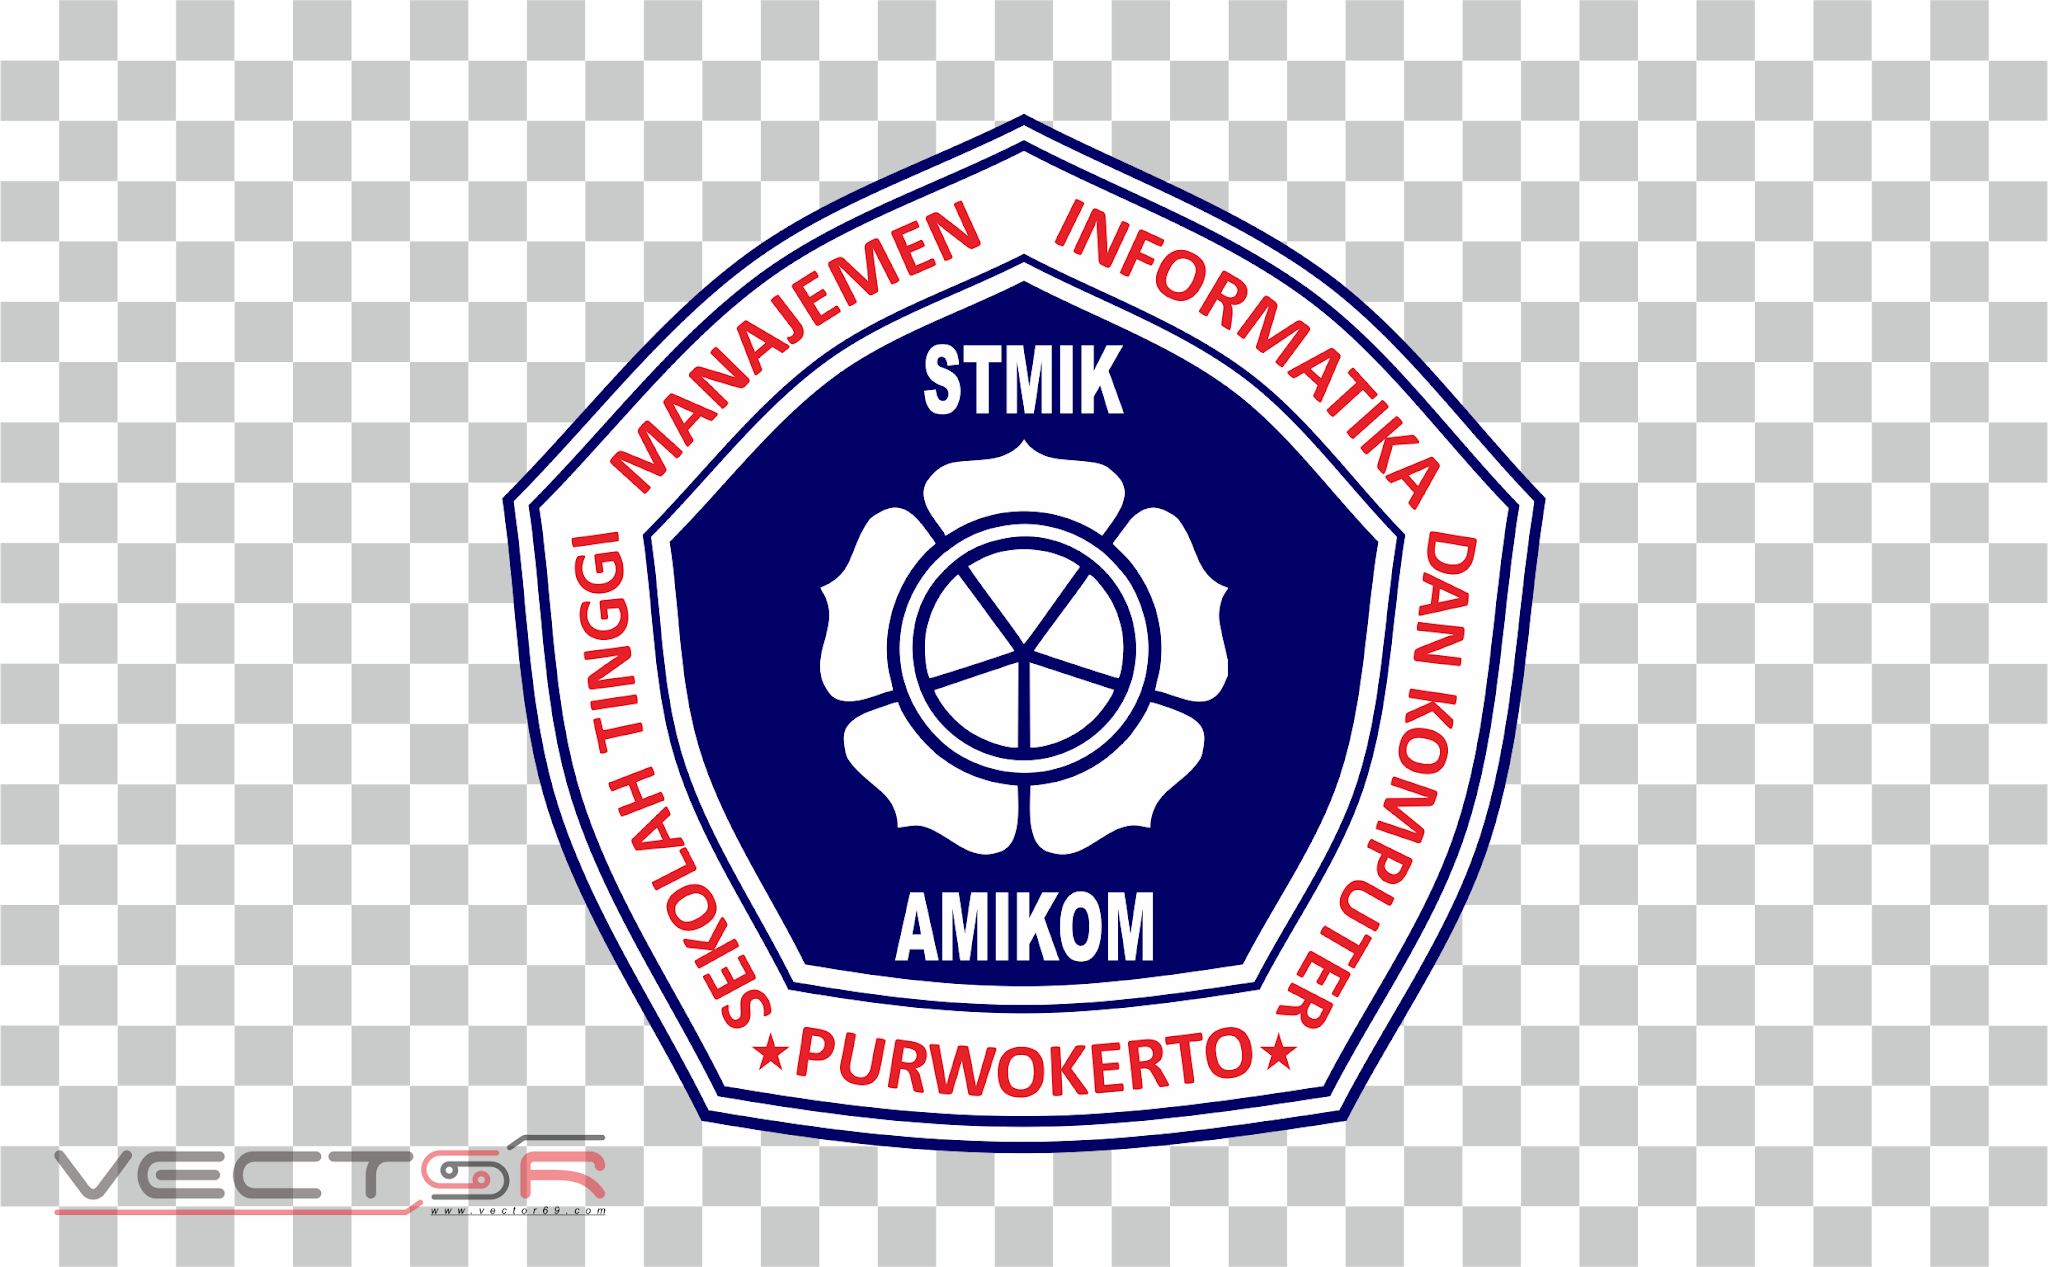 STMIK Amikom Purwokerto Logo - Download Vector File PNG (Portable Network Graphics)